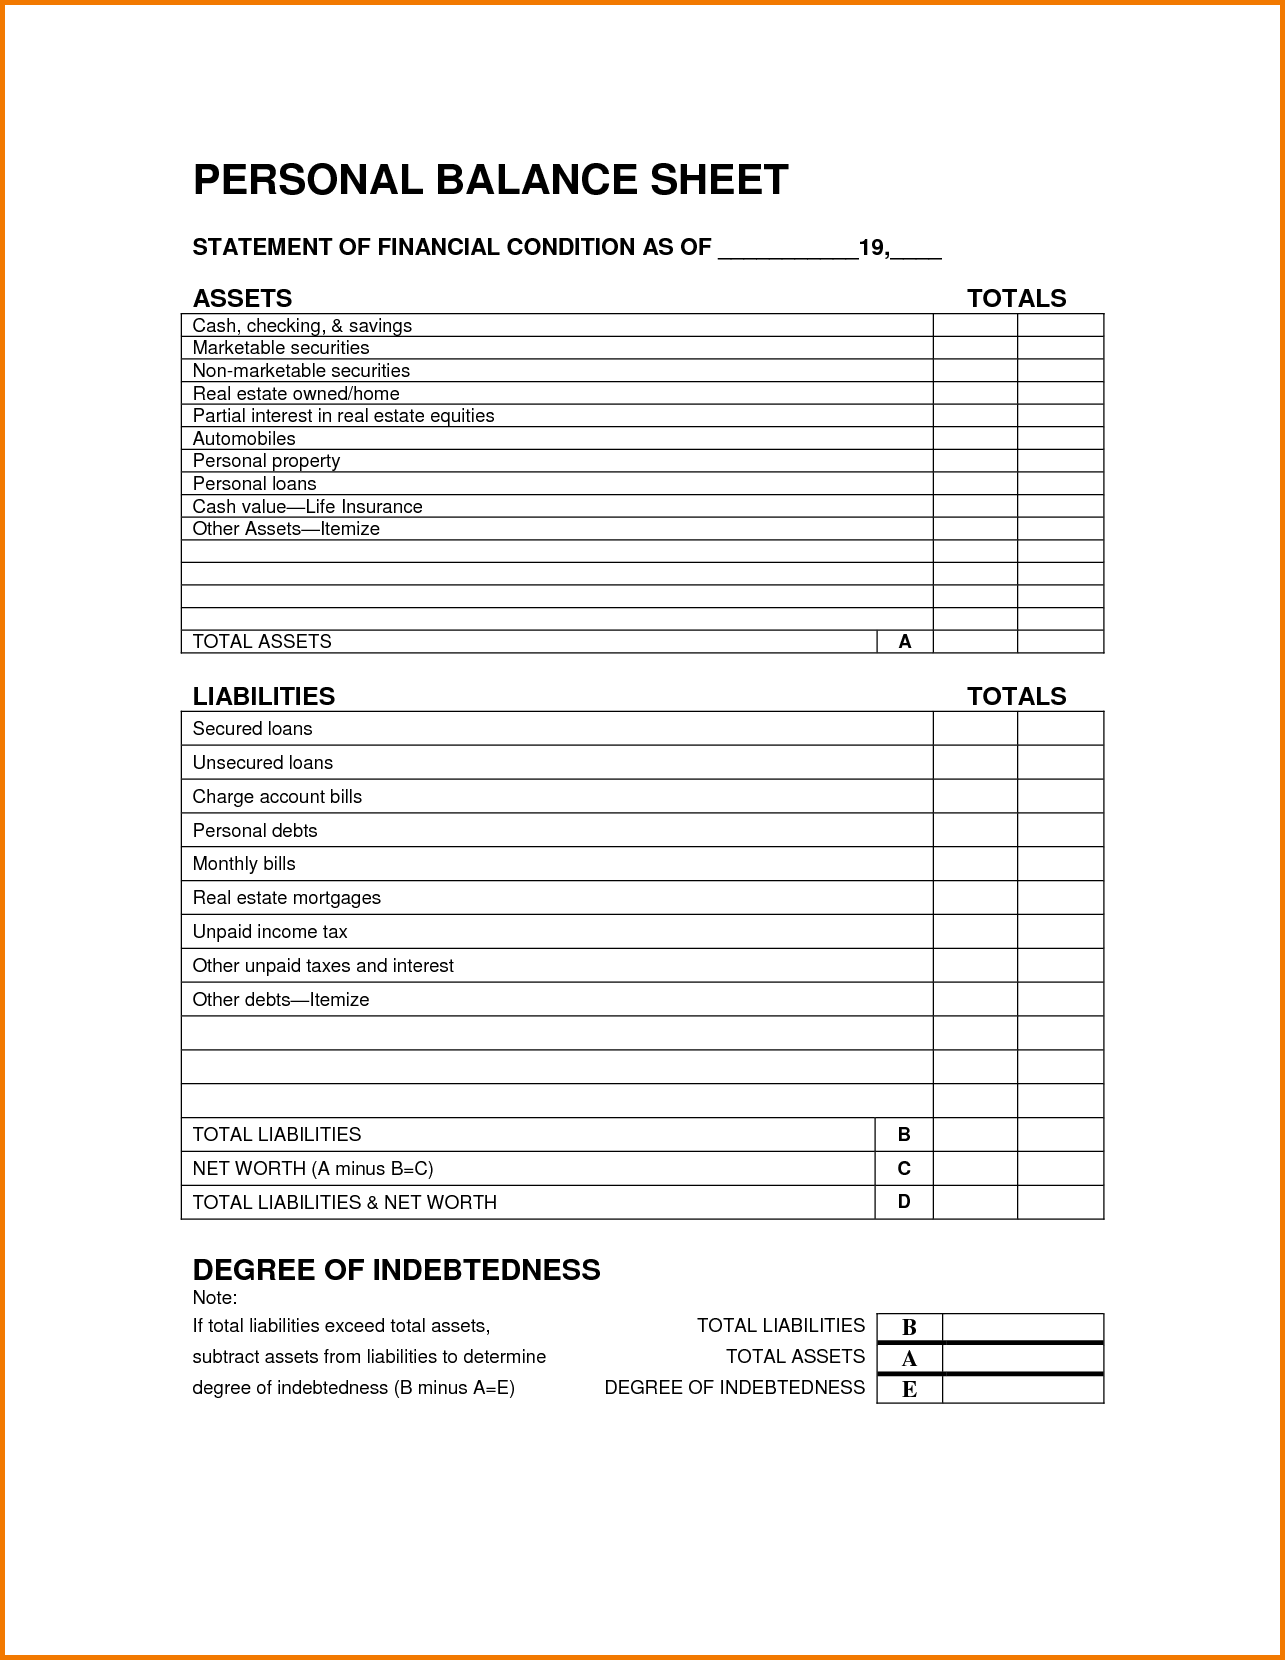 Templates For Balance Sheet Template Excel Free Download And Balance Sheet Template Excel Free Download Templates